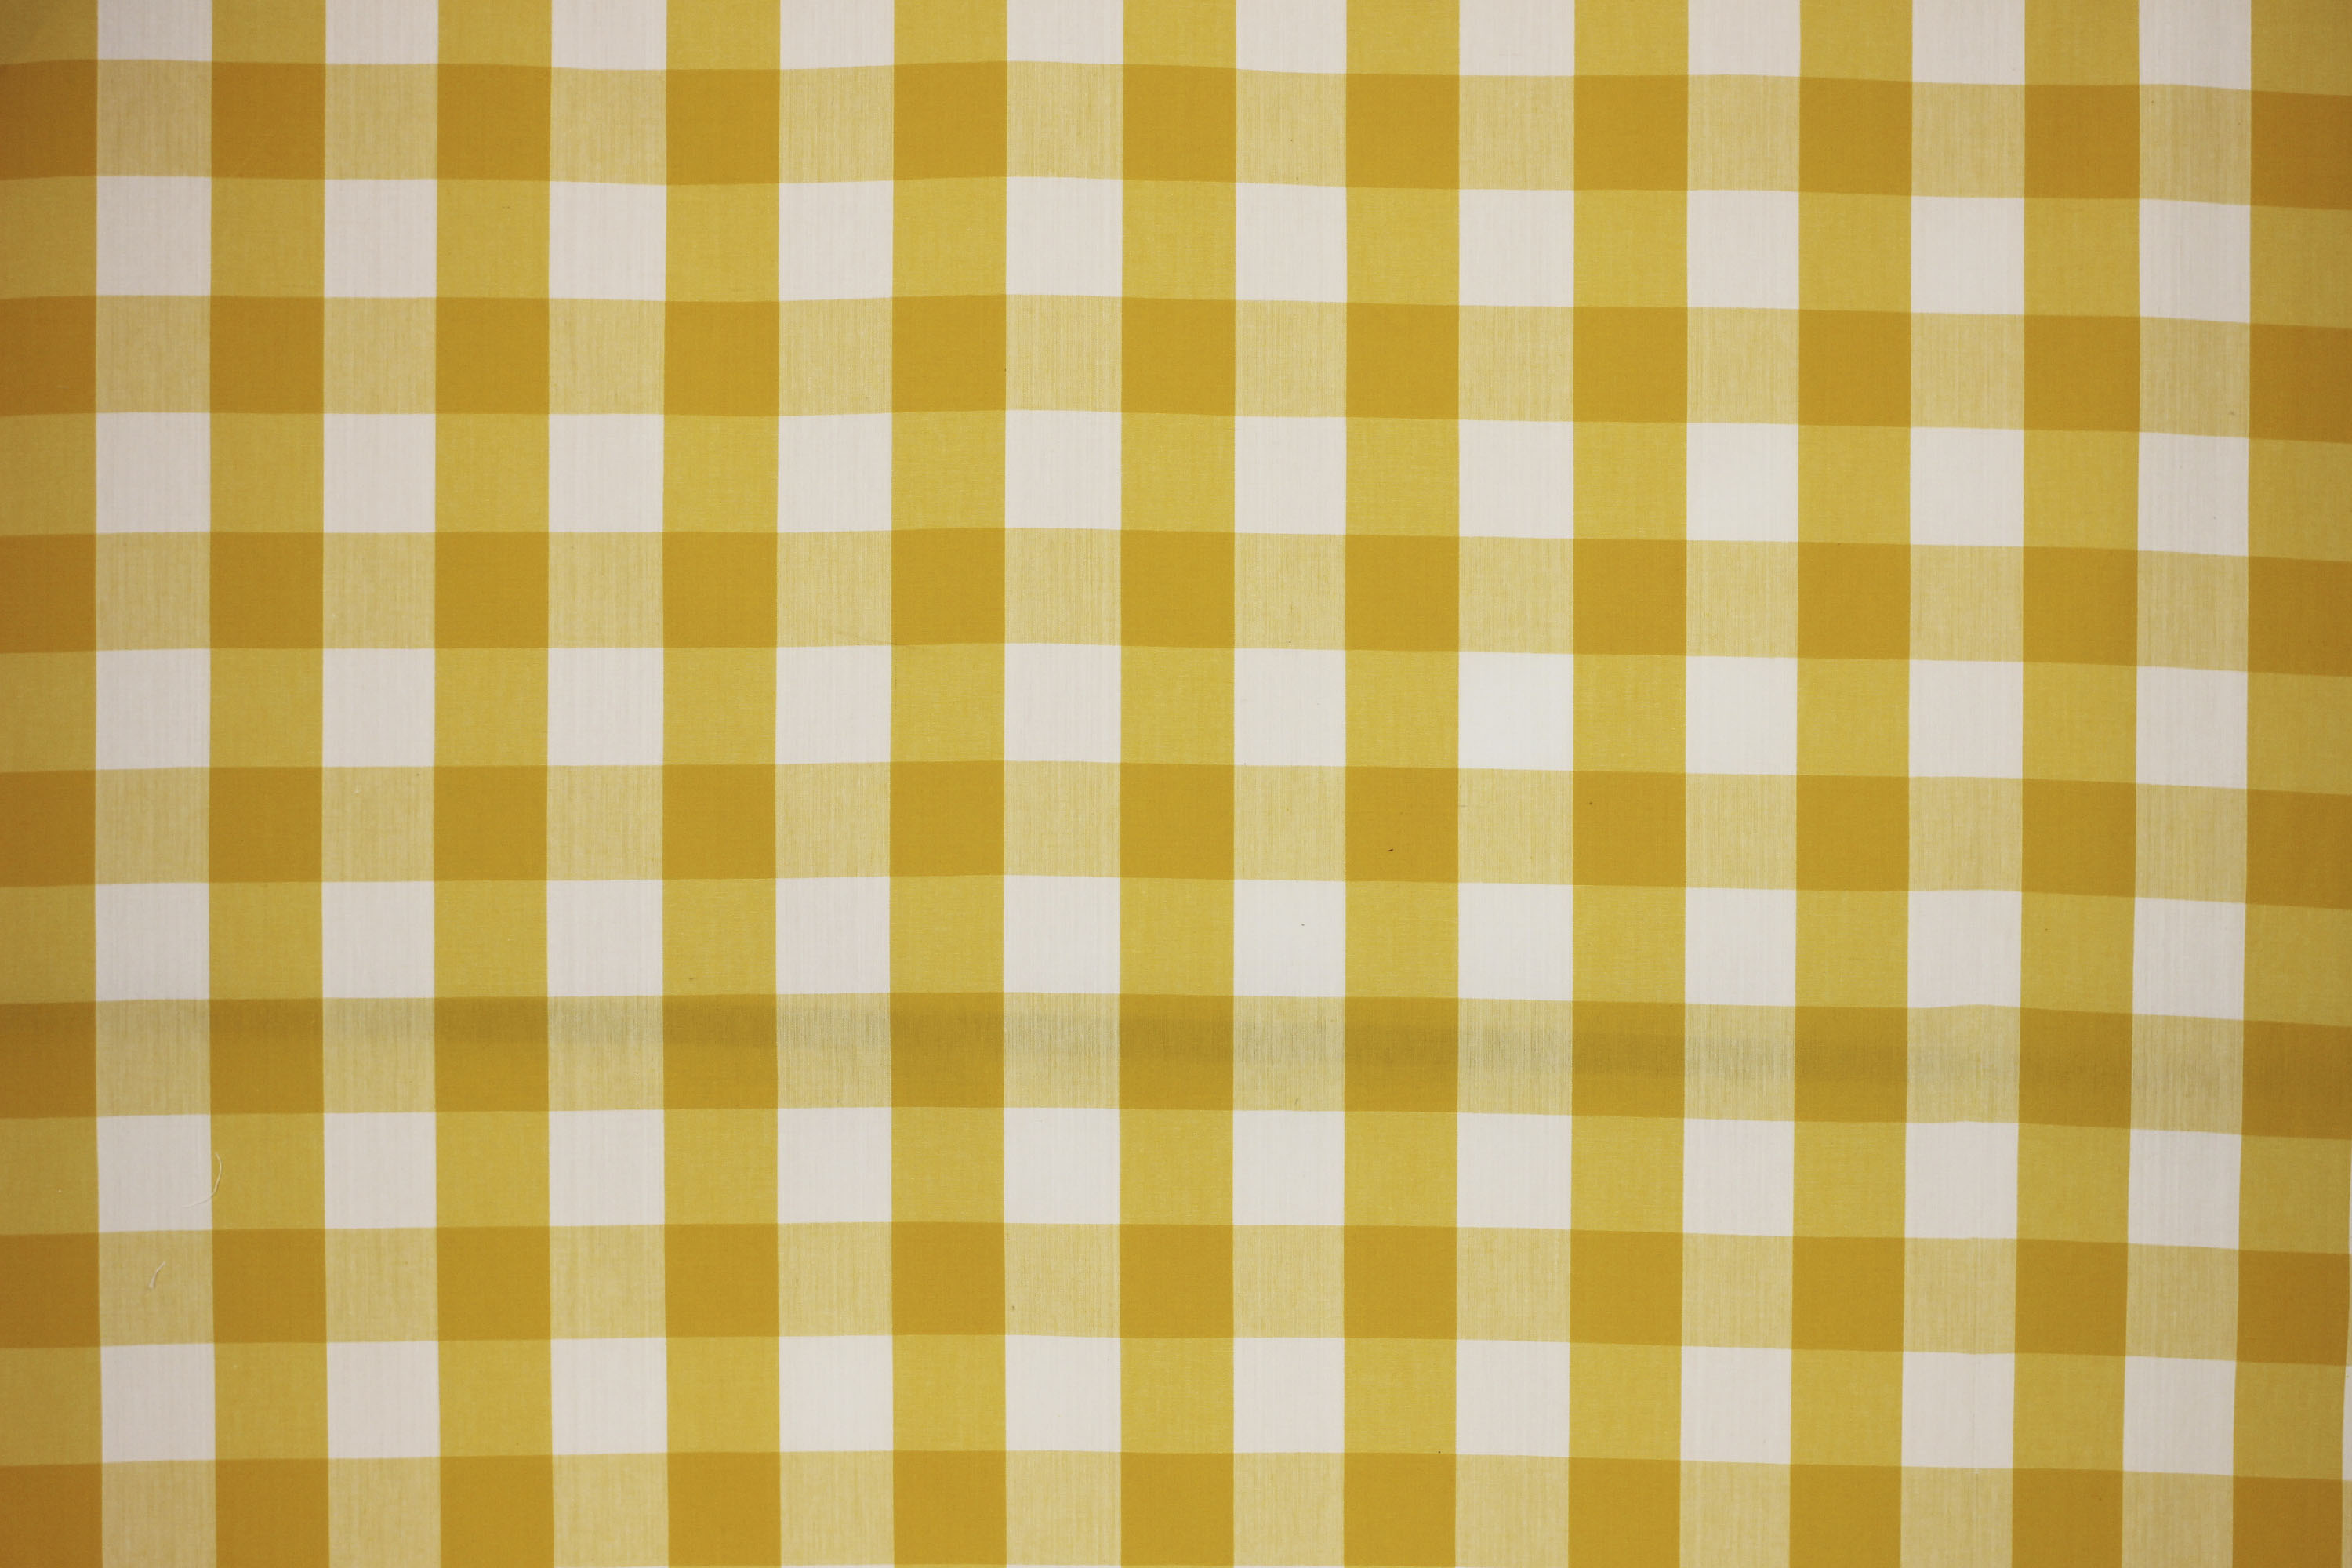 Yellow White Gingham Oilcloth Wipeable Fabrics Large Check | The ...